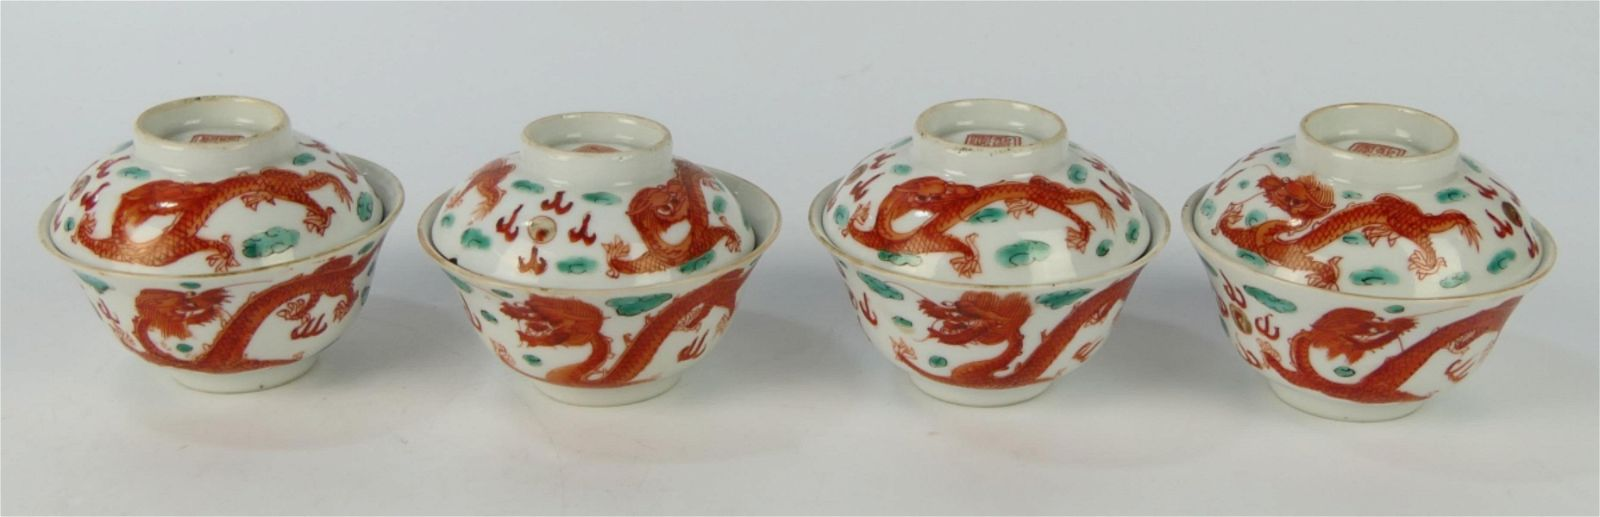 4 ANTIQUE CHINESE RUST DRAGON TEACUPS w SAUCERS